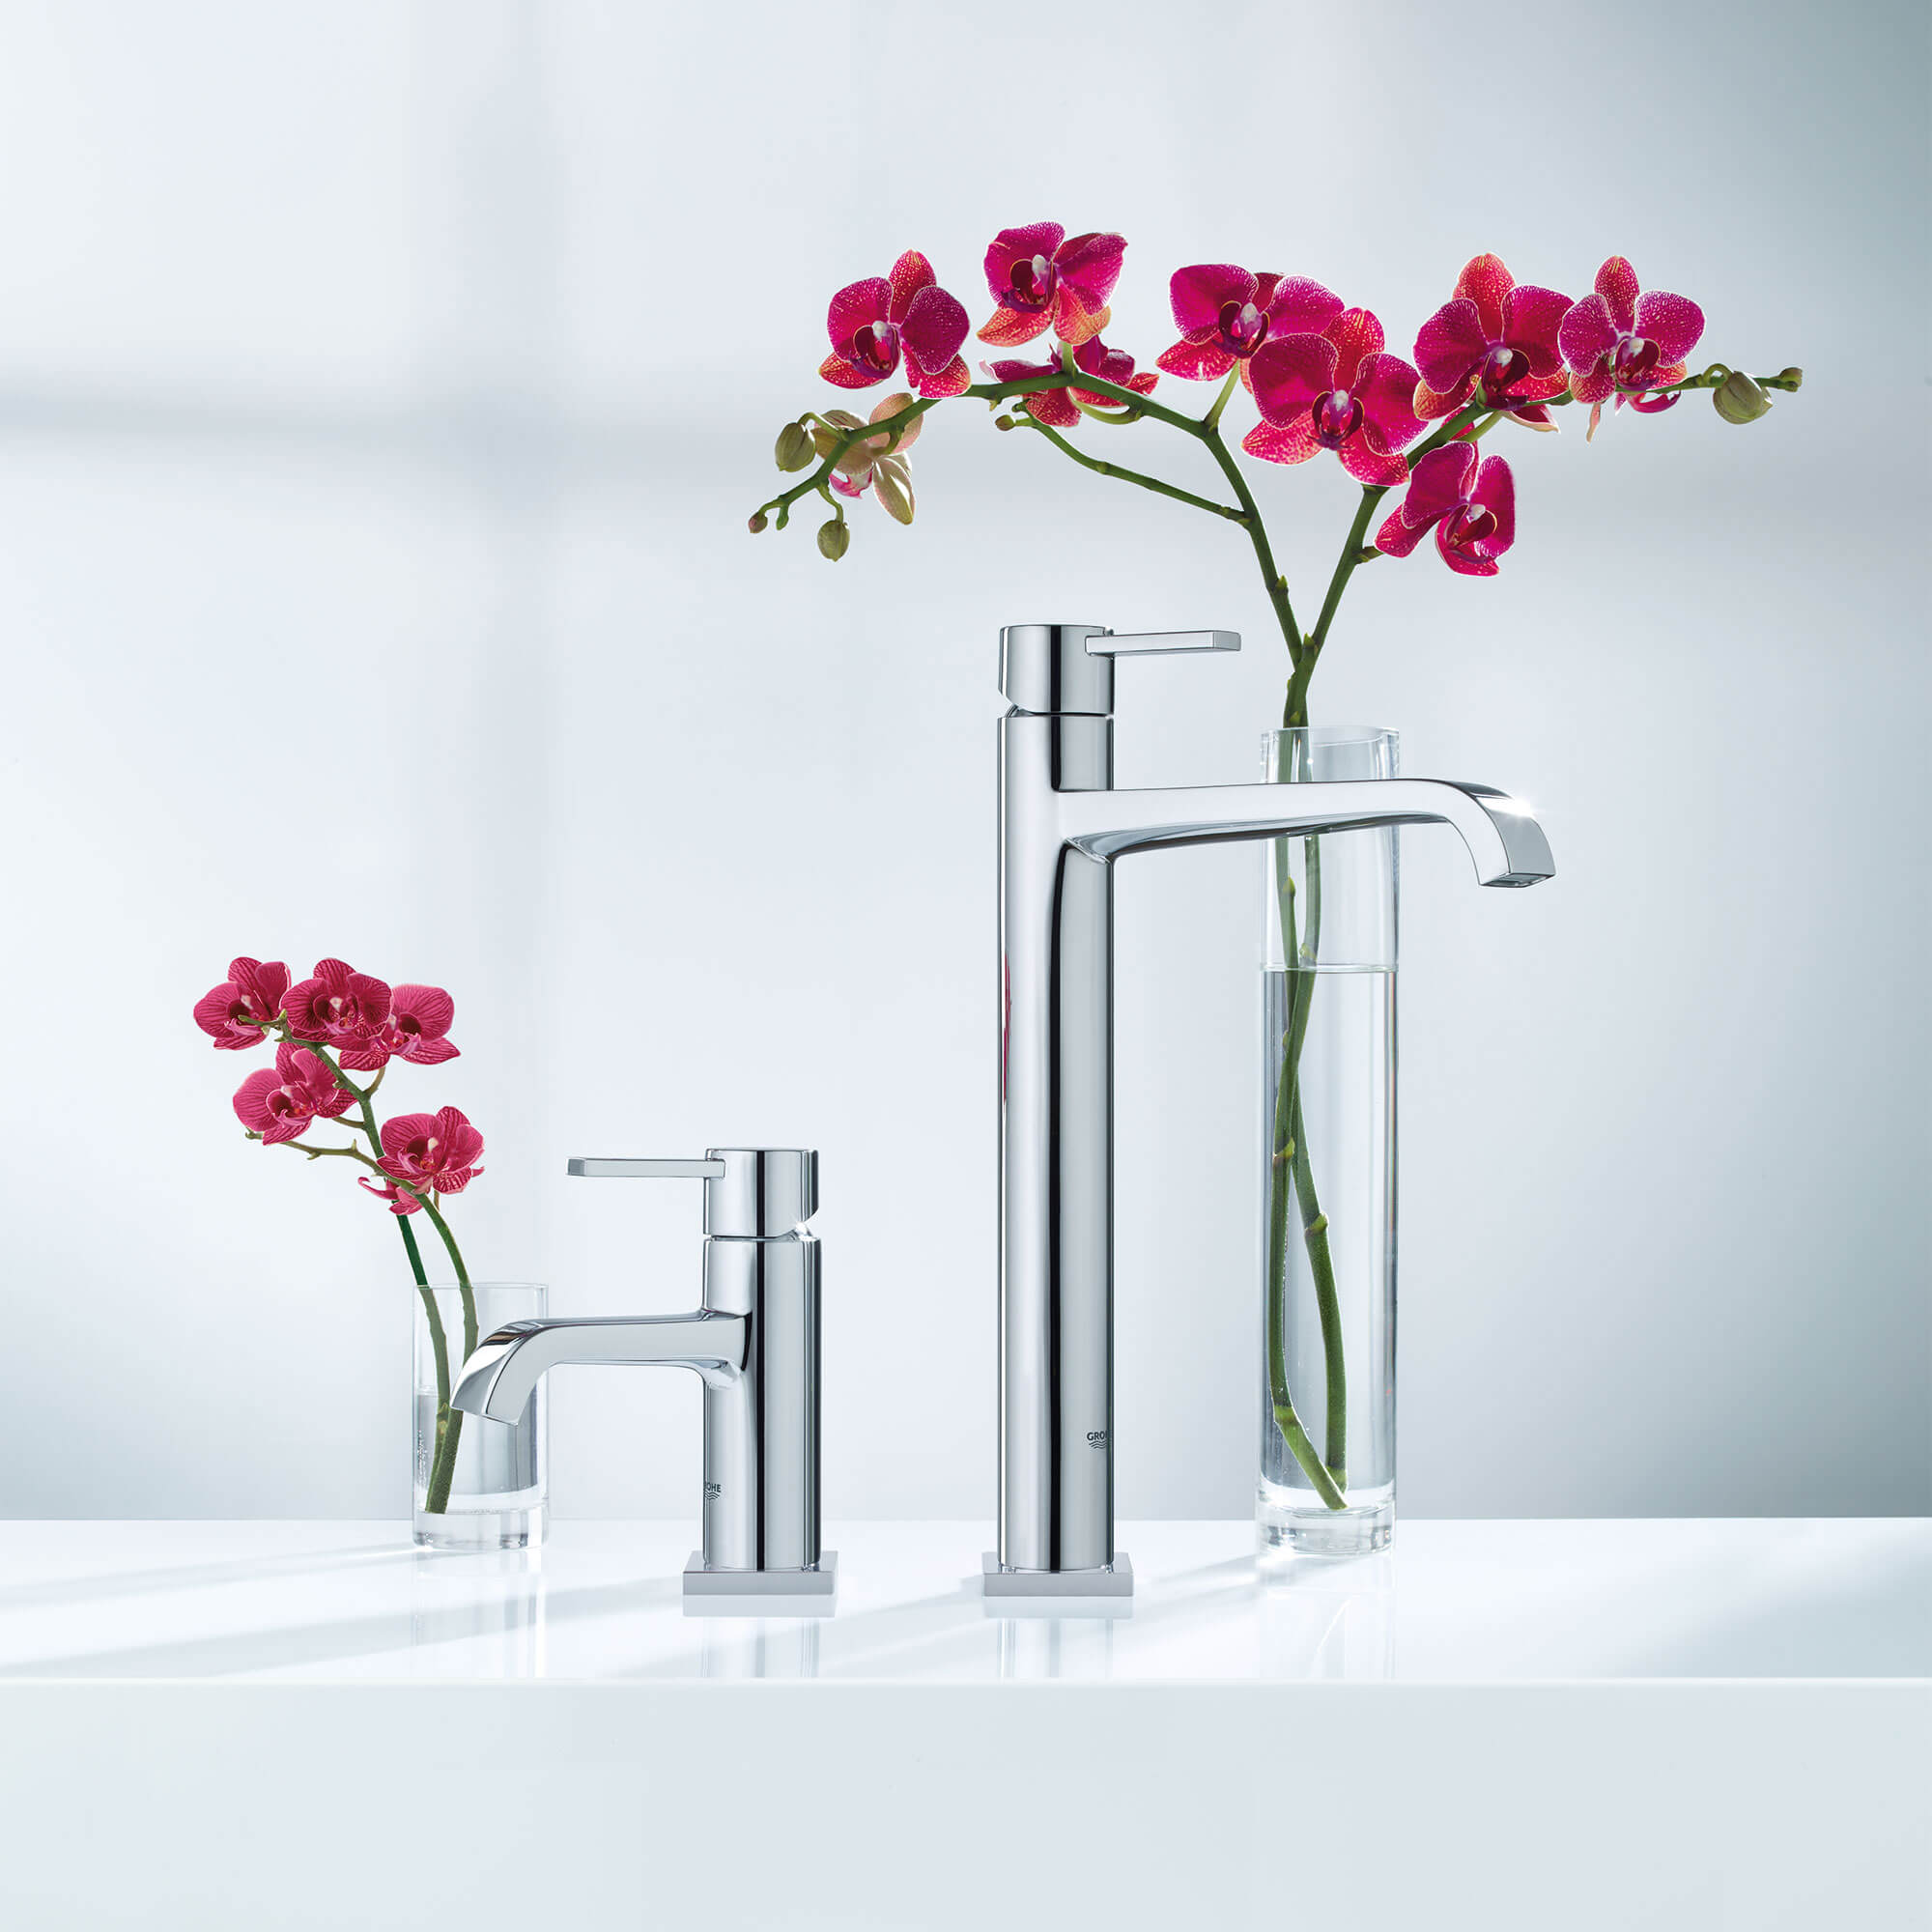 Faucet sizes from small to x-large next to flower vases.